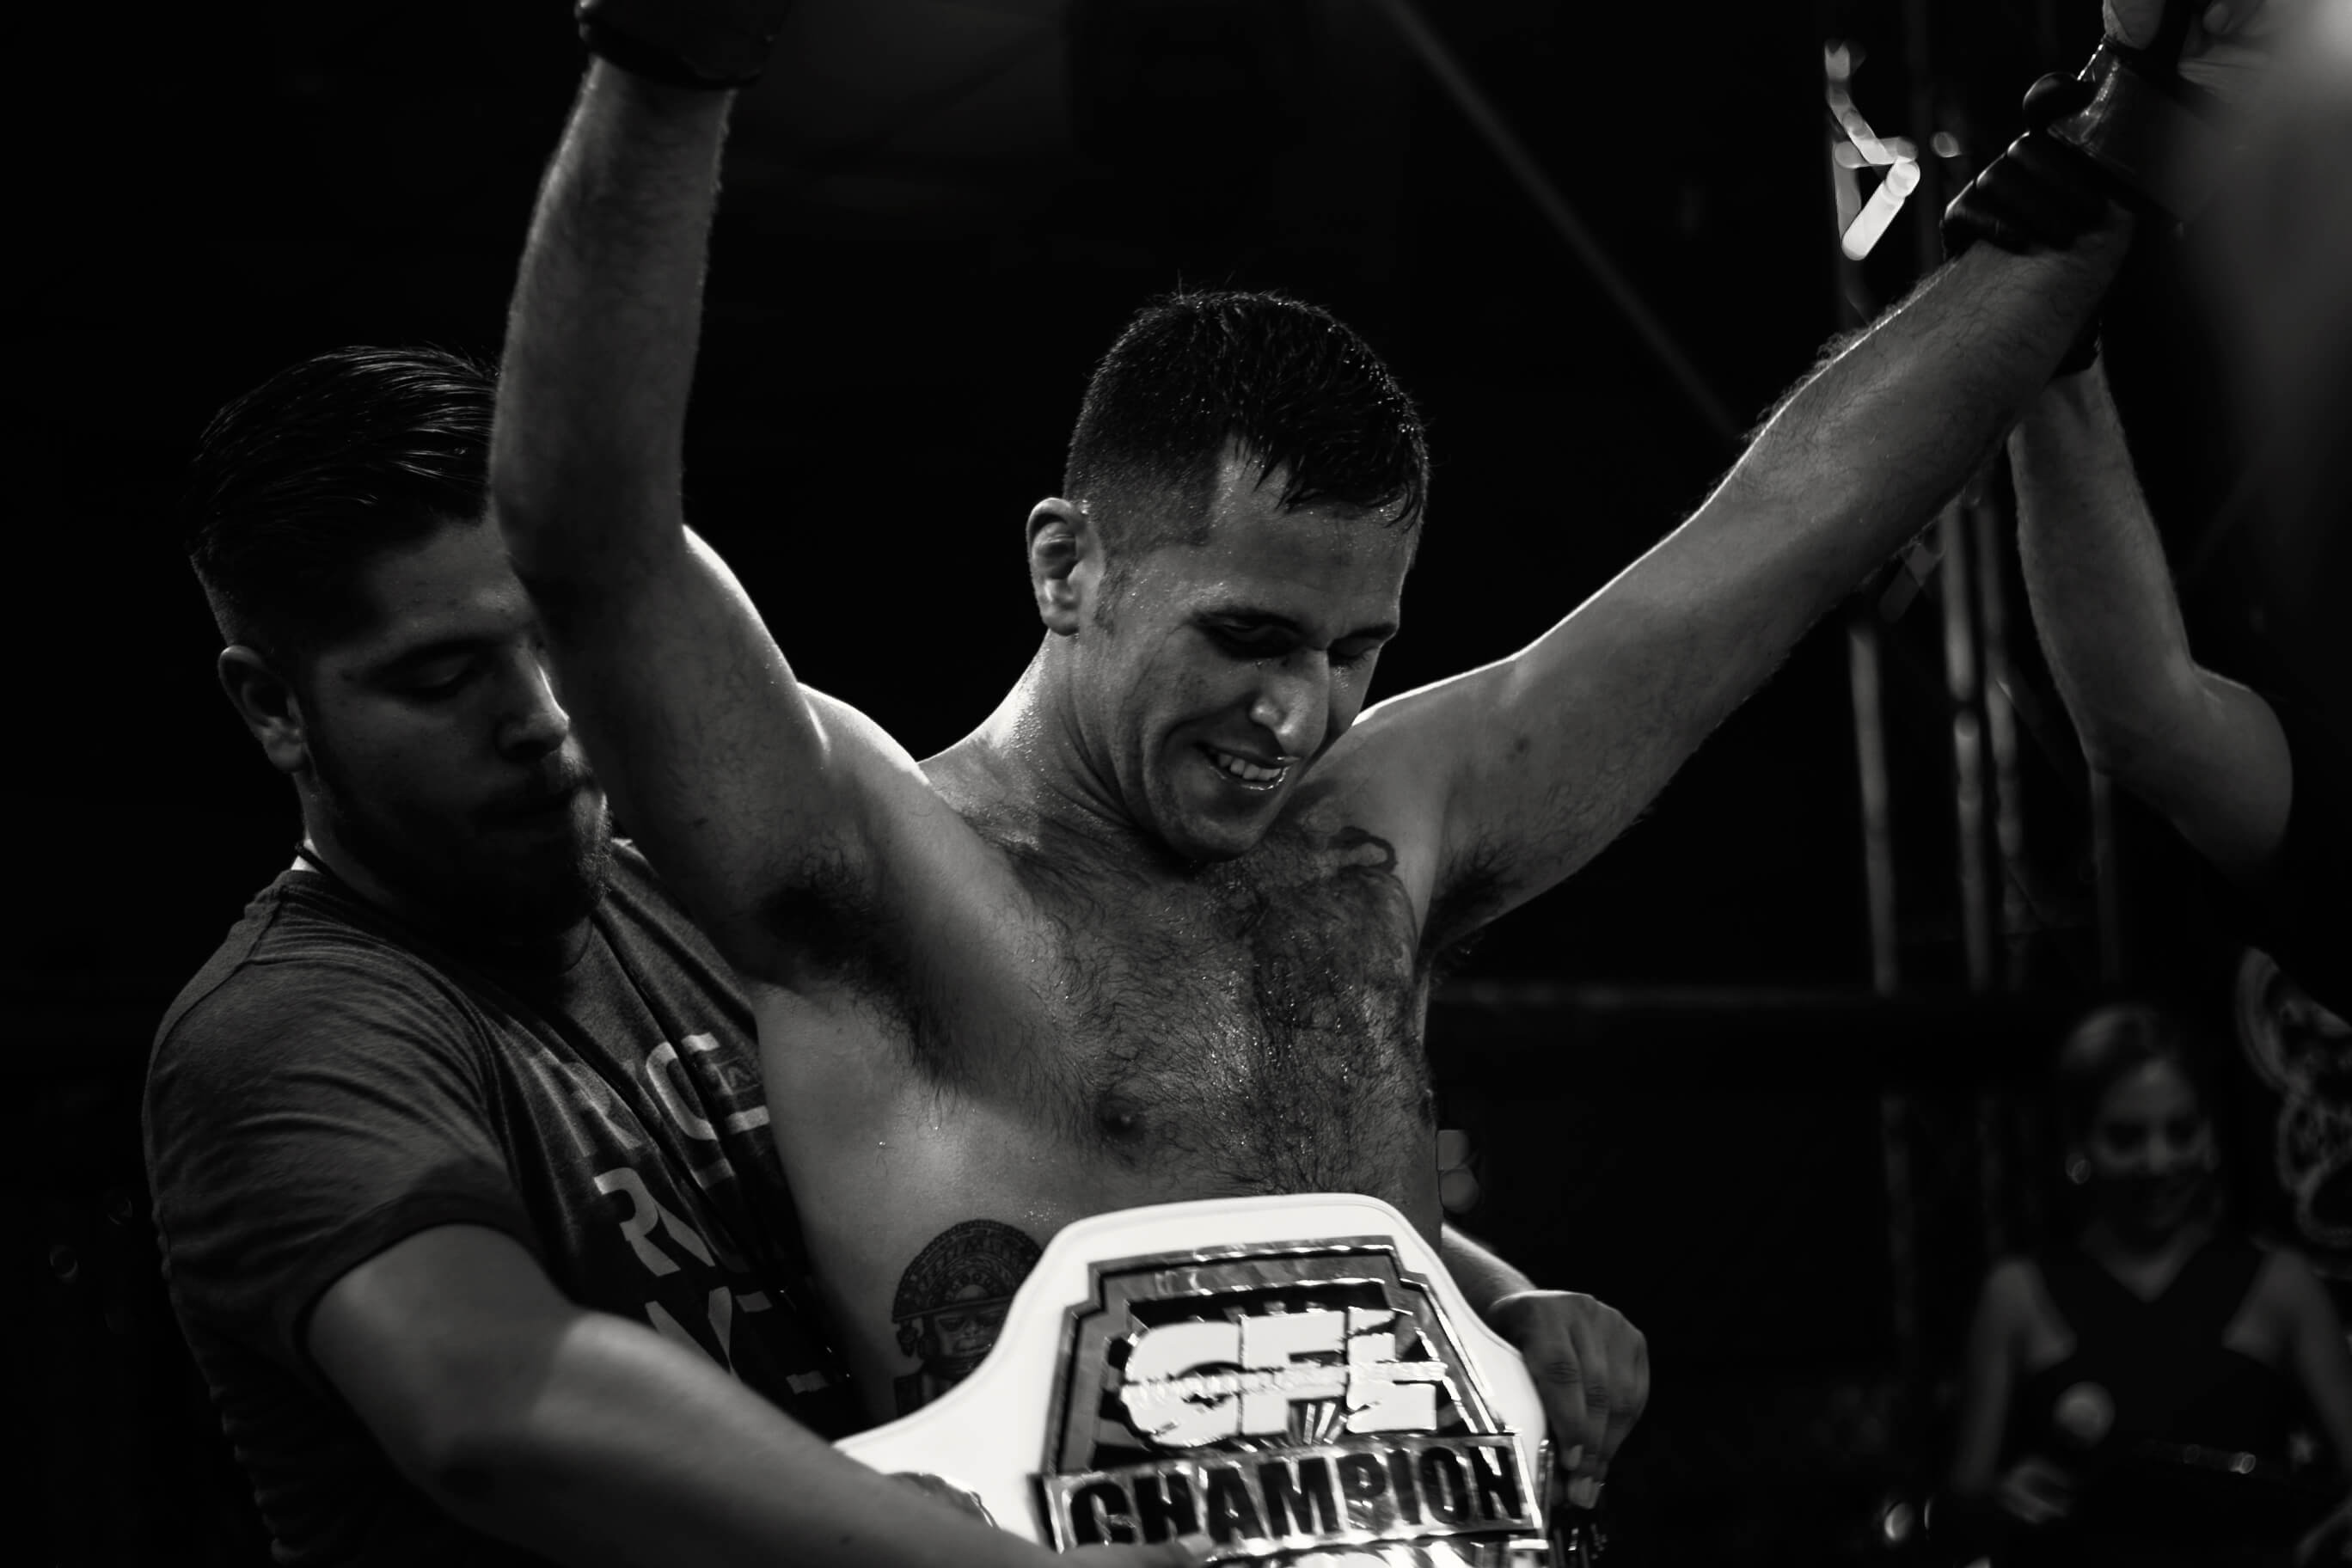 Jose Campos winning the championship belt at CFL VIII